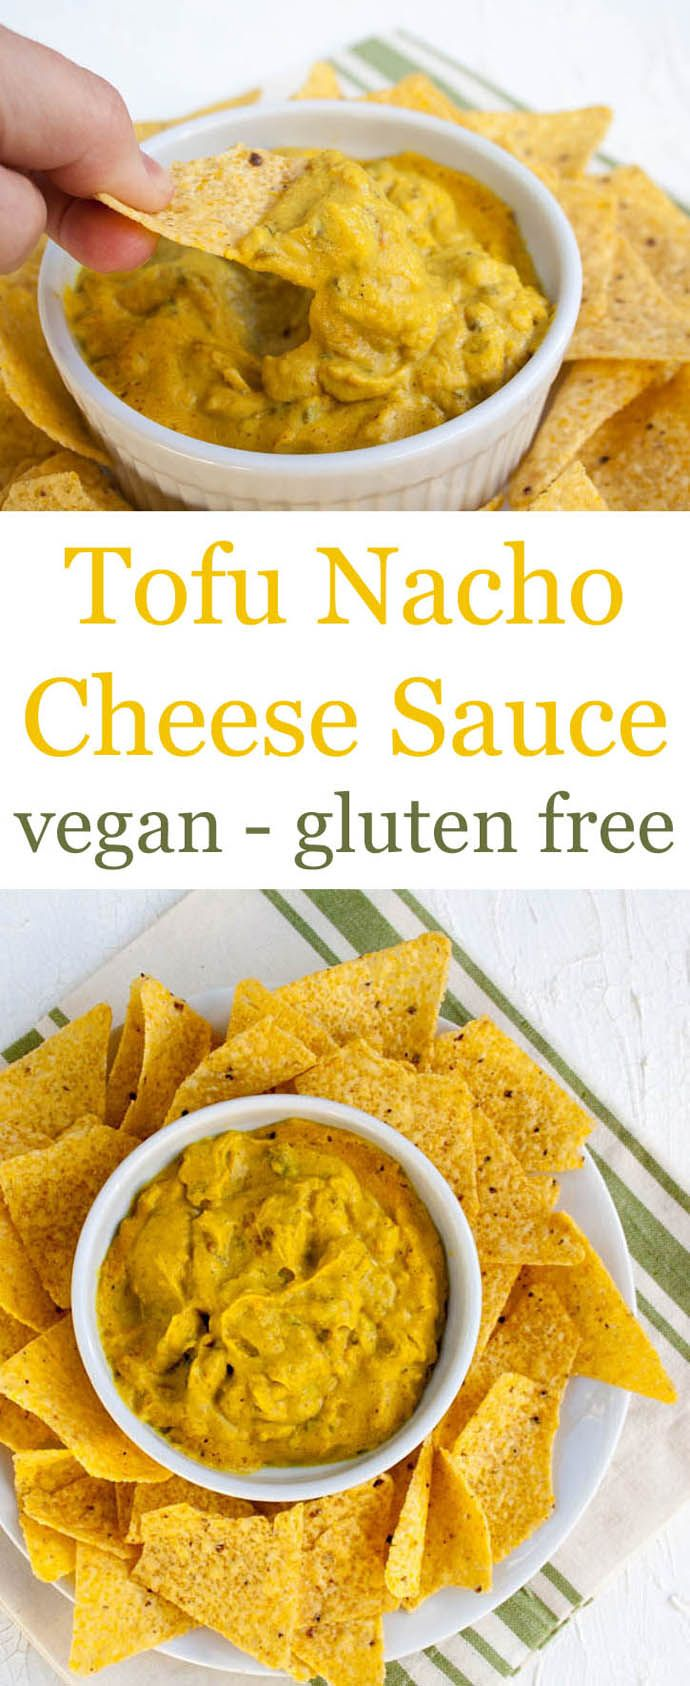 Tofu Nacho Cheese Sauce (vegan, glutenfree) - This easy recipe for Tofu Nacho Cheese Sauce is spicy, thick, and chunky with loads of flavor! Perfect for Game Day! (Simple Nacho Cheese)